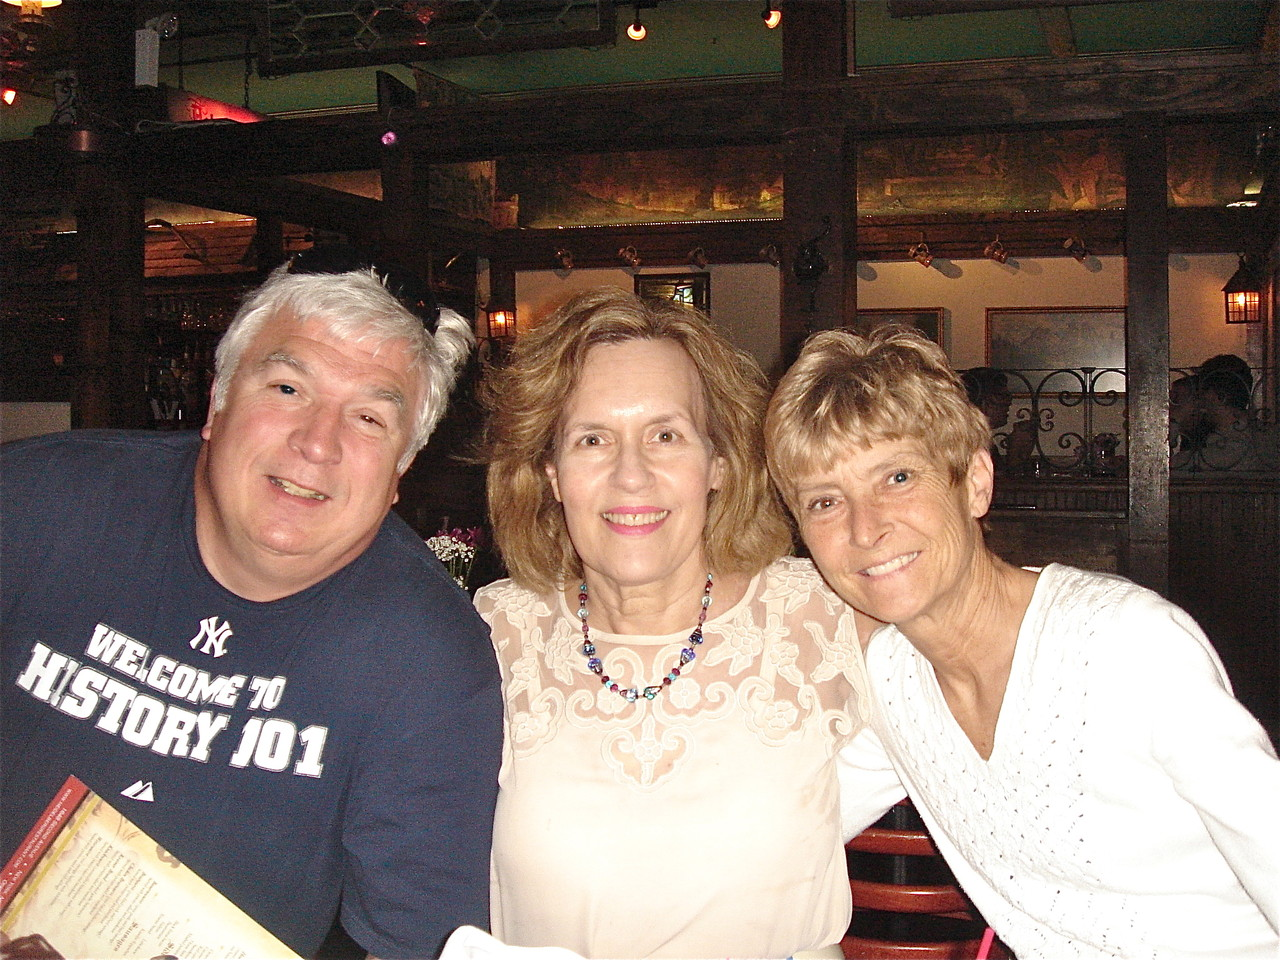 Steve Theisen, Lorraine, & Sue Theisen